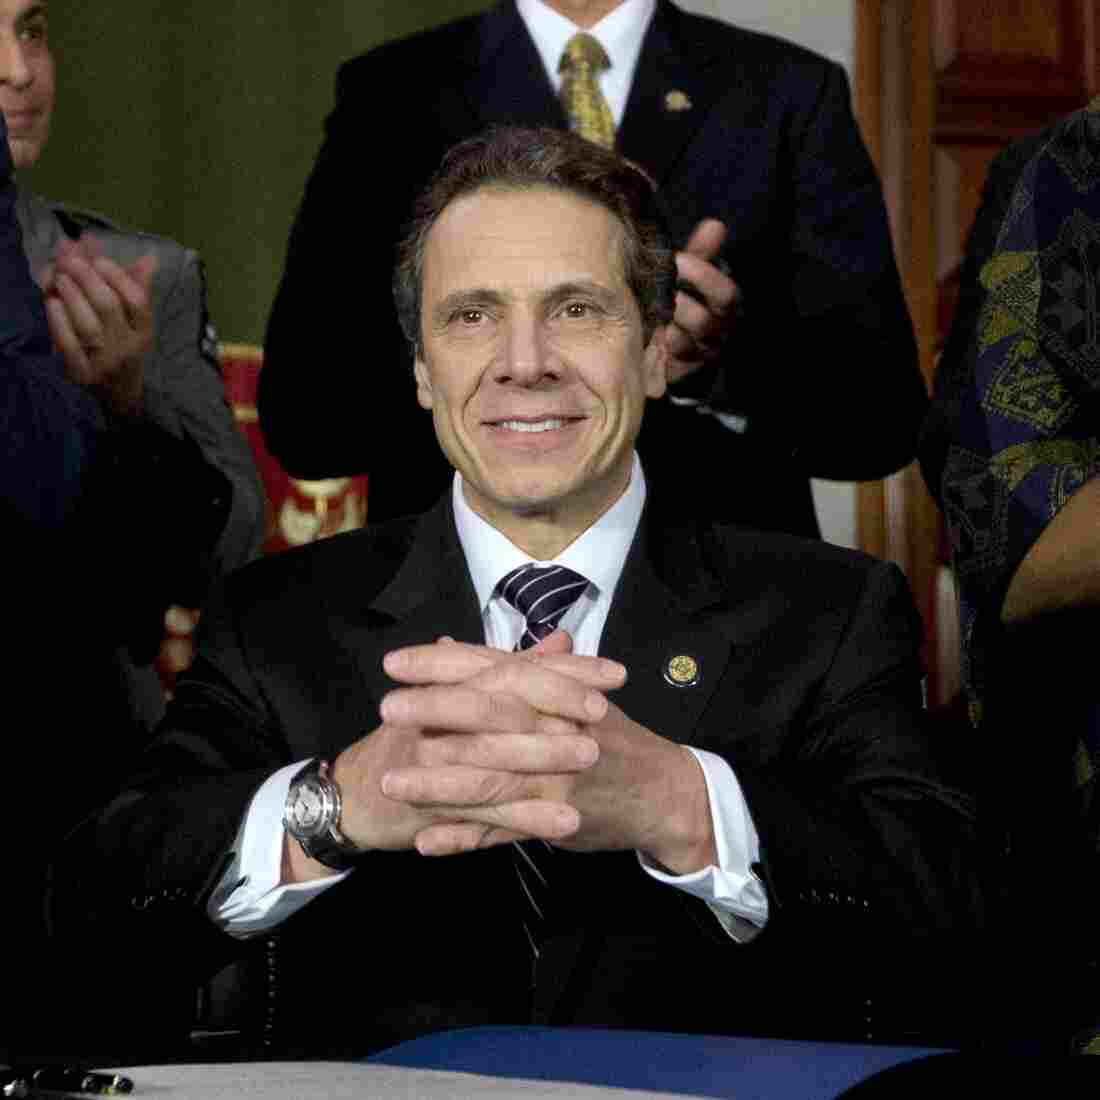 N.Y. Governor Flexes Political Muscle To Pass Tough Gun Law